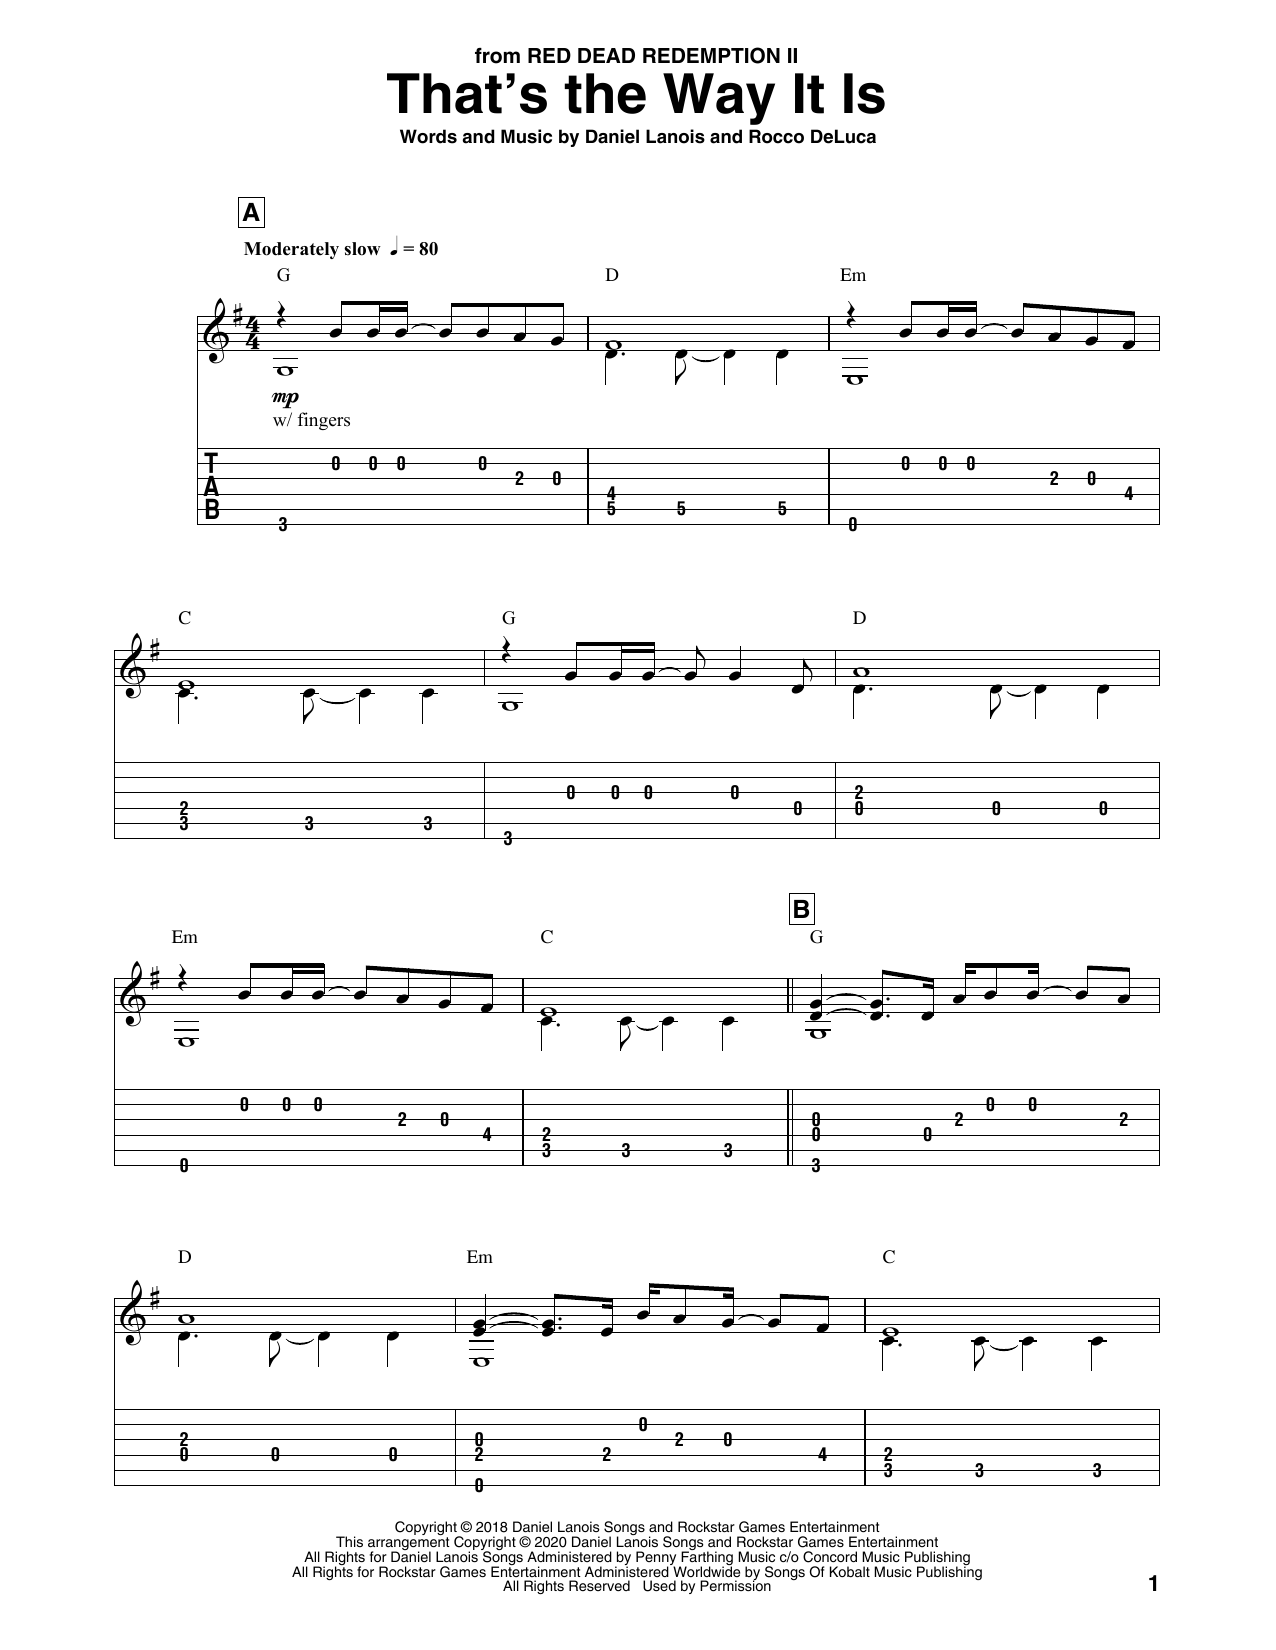 That's The Way It Is (from Red Dead Redemption II) Sheet Music